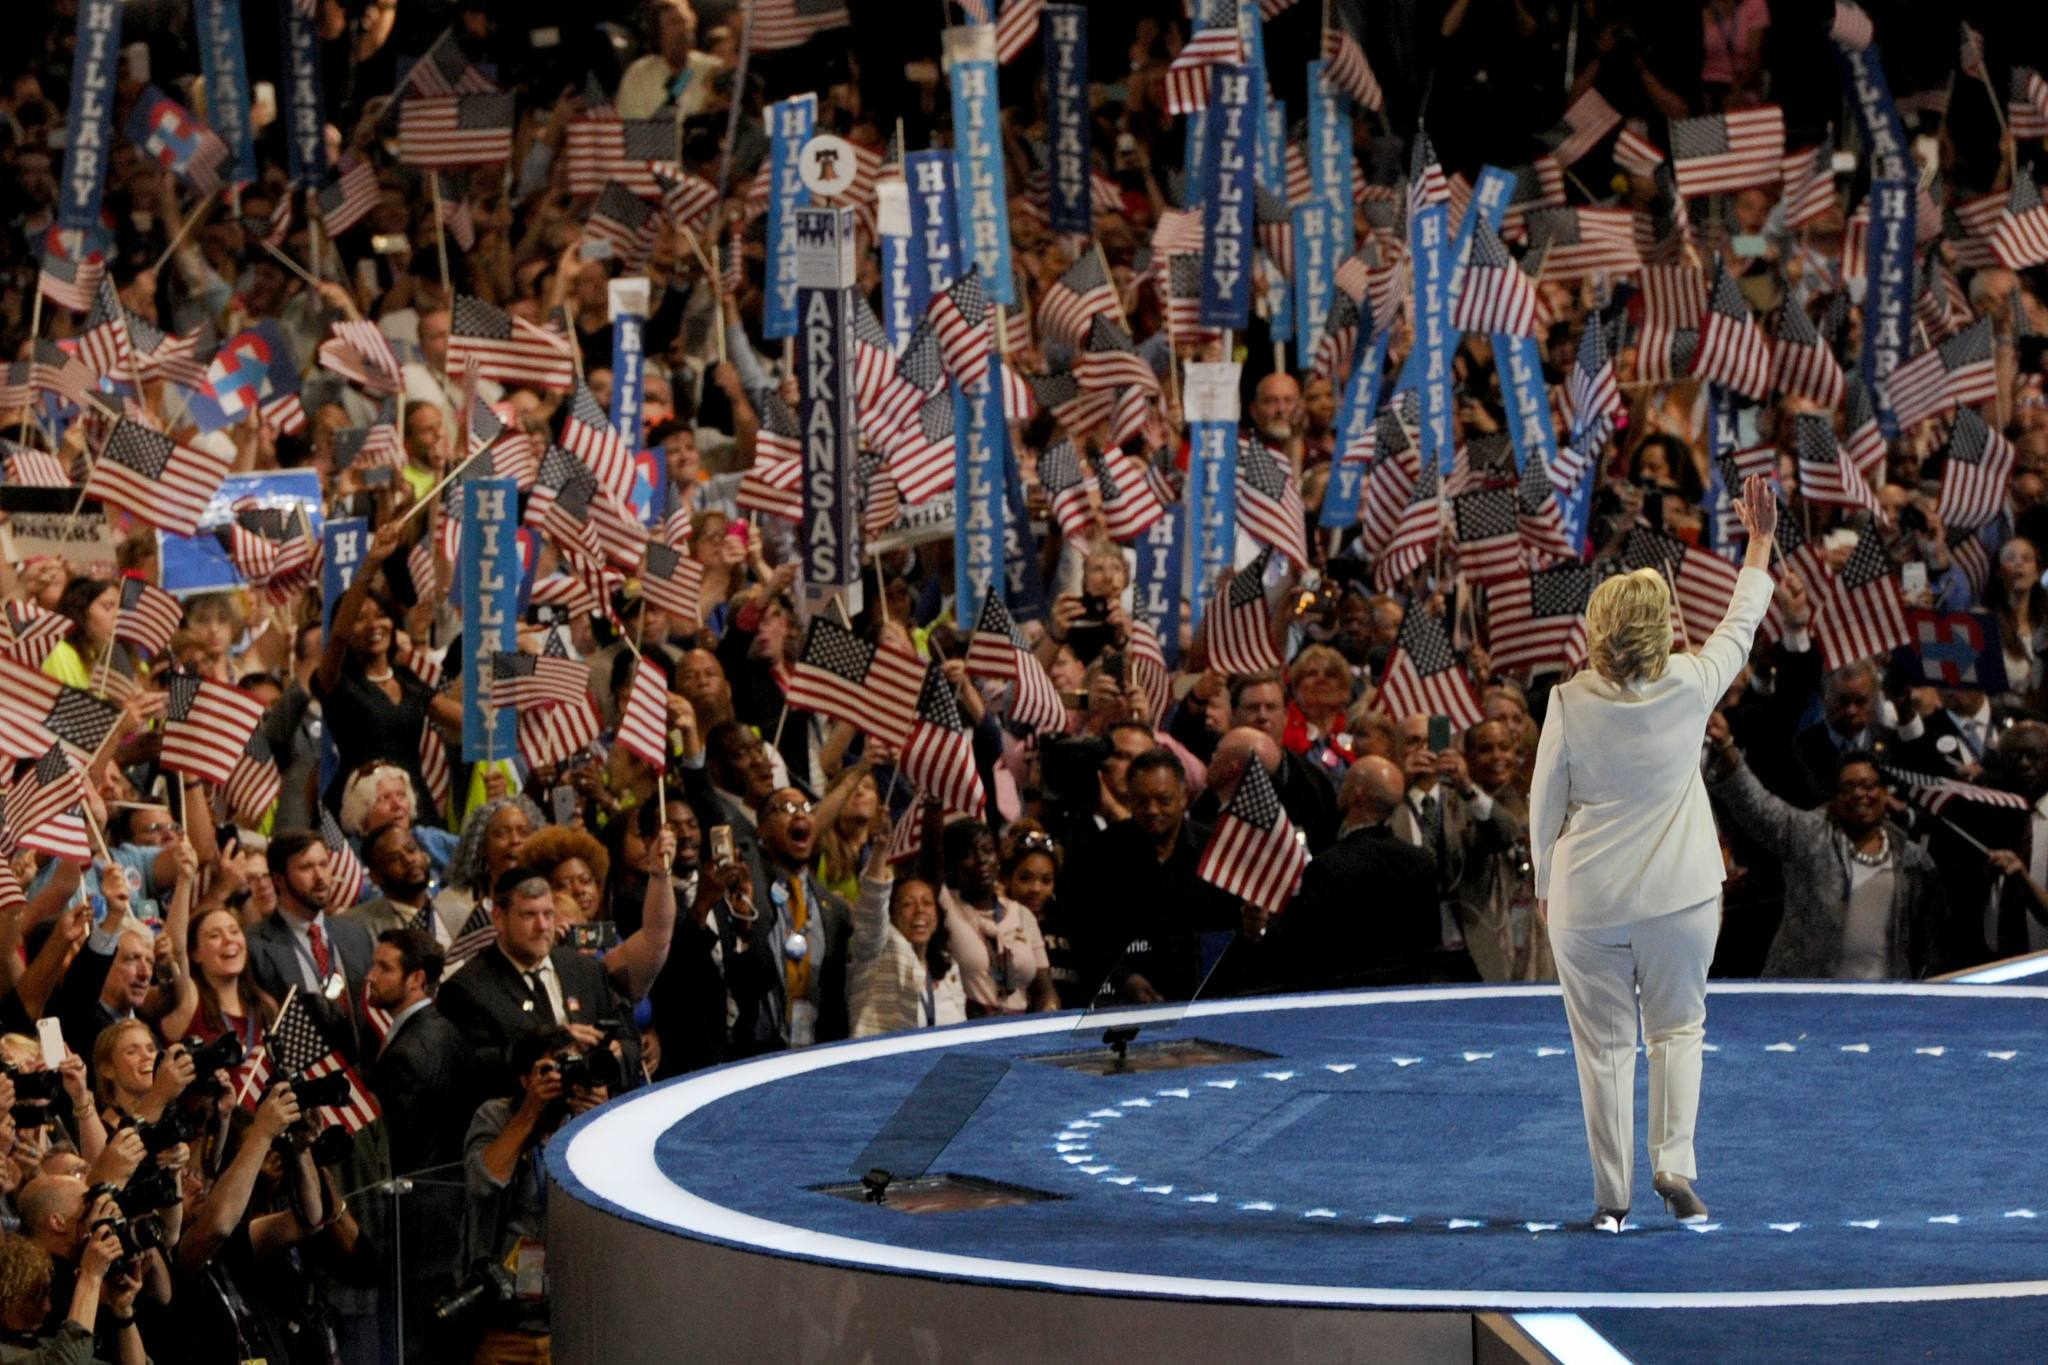 July 28, 2016: Democratic presidential nominee Hillary Clinton walks on stage at the Wells Fargo Center to accept the nomination of her party on the final night of the DNC.